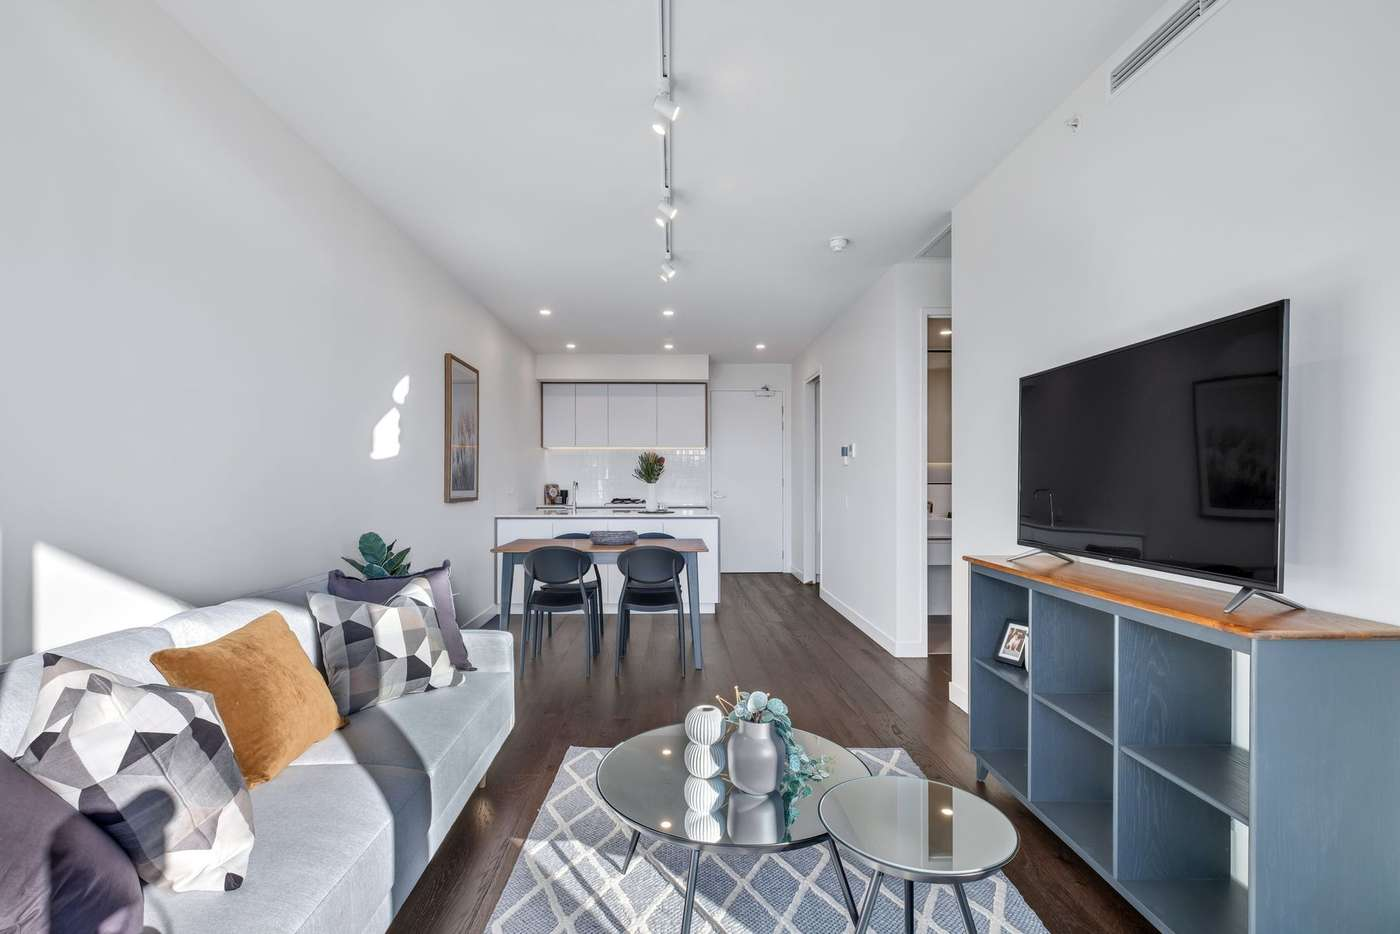 Fifth view of Homely apartment listing, 1602/29 Angas Street, Adelaide SA 5000